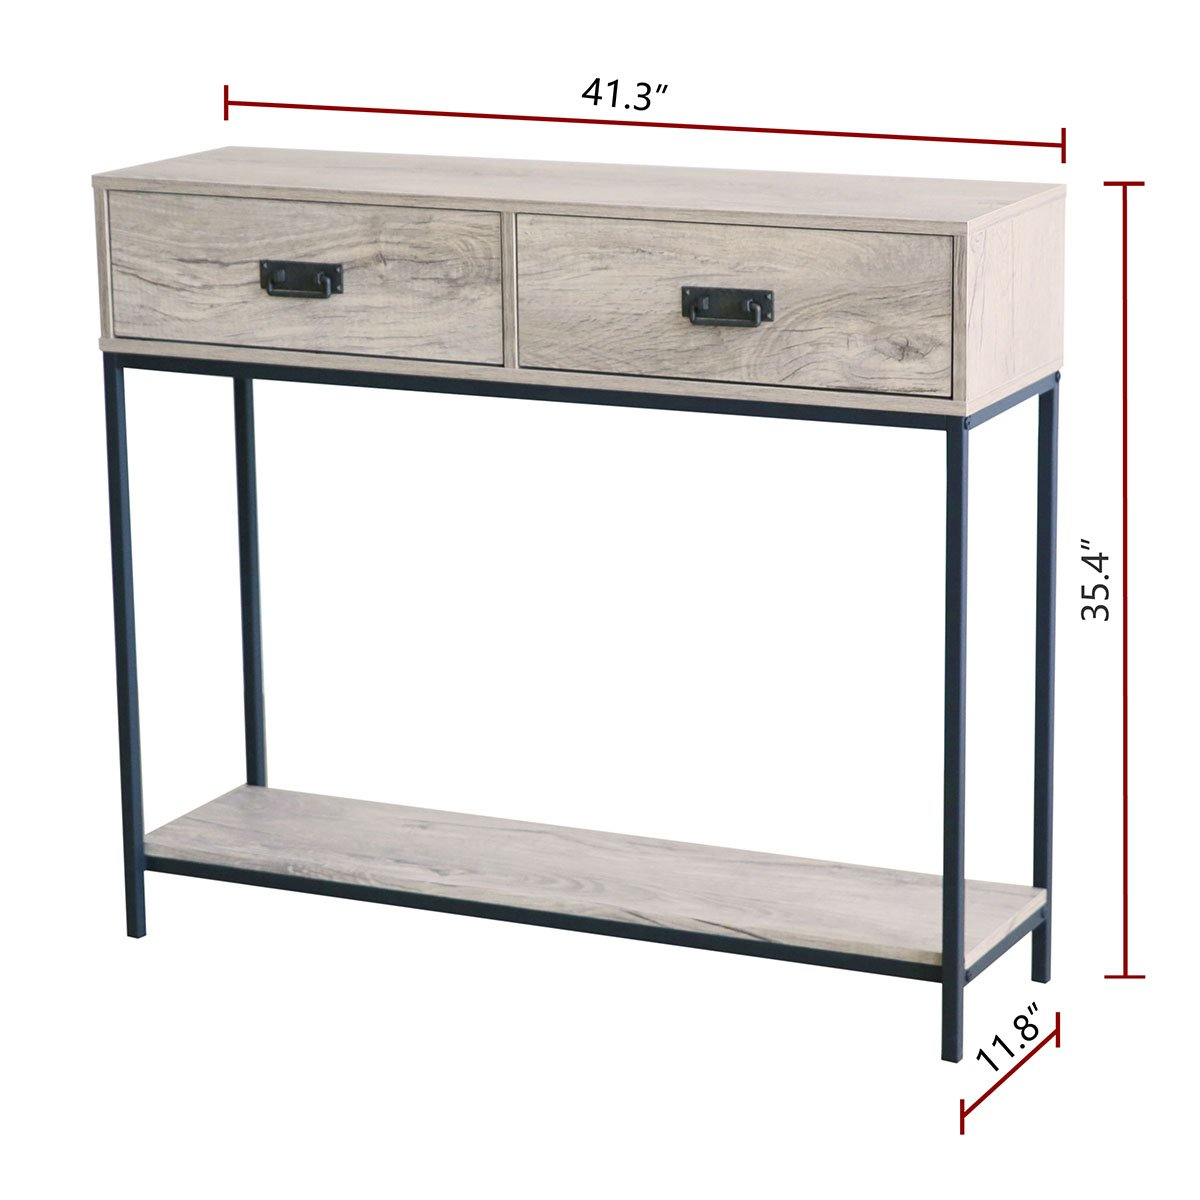 2-Tier Display Shelf Multipurpose Rectangular Modern Cabinet Table Oak Wood Roomfitters 2 Drawer Entryway Console Table Sofa Table for Hallway Foyer